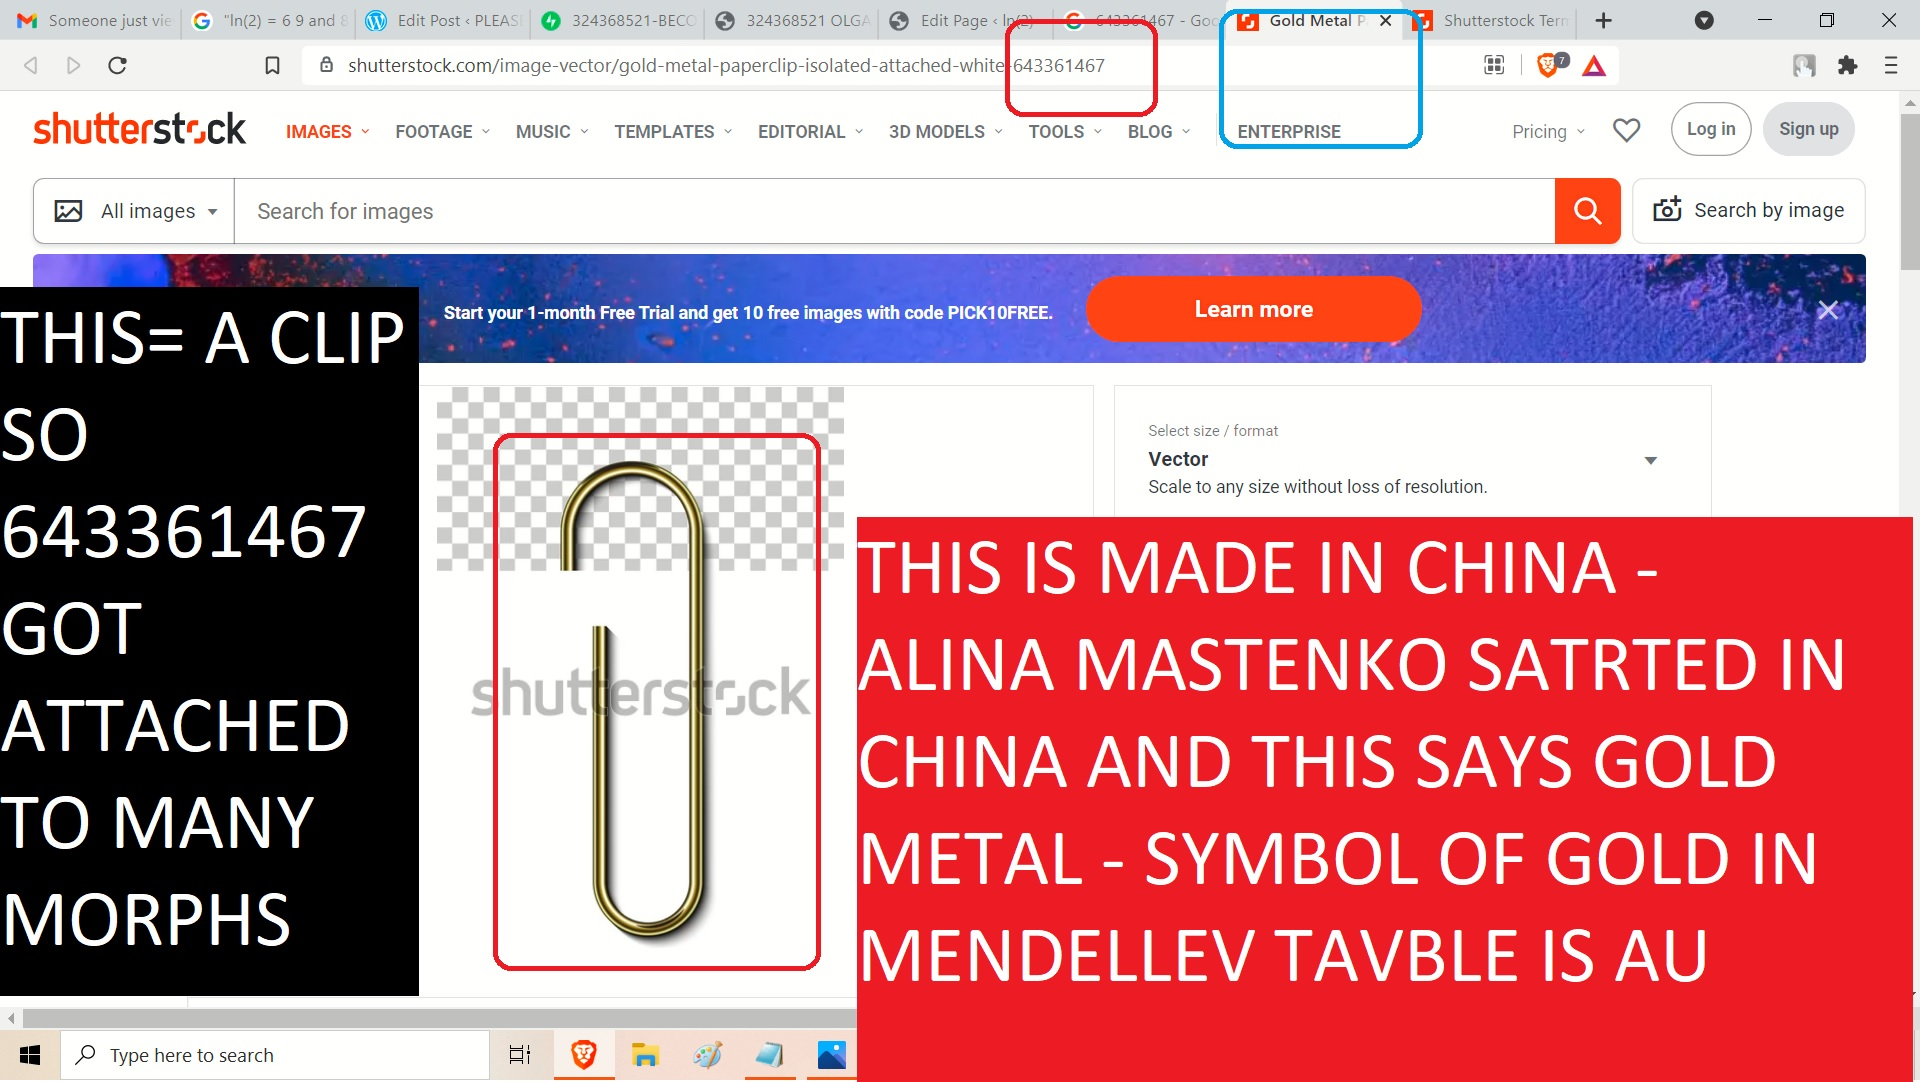 643361467 A CLIP MADE IN CHIN A- SO, THIS IS A GOLD CLIP - GLD = AU IN EMNDELEEV TABLE - THIS IS A CLIP THIS GOT ASTATACHED TO MANY MORPHS